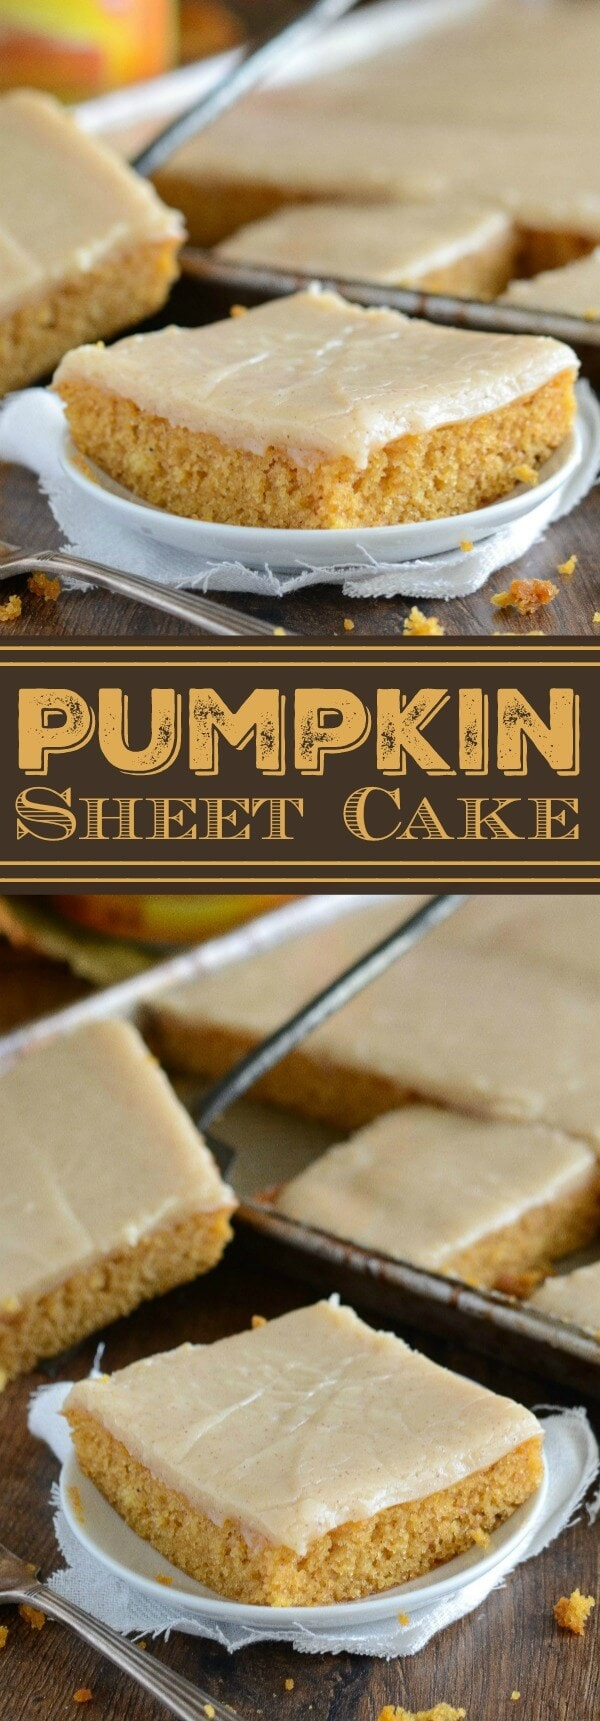 Pumpkin Sheet Cake: this easy homemade spiced pumpkin sheet cake is made in just 30 minutes and frosted with a creamy cinnamon cream cheese icing! #pumpkin #cake #fallrecipes #pumpkindessert